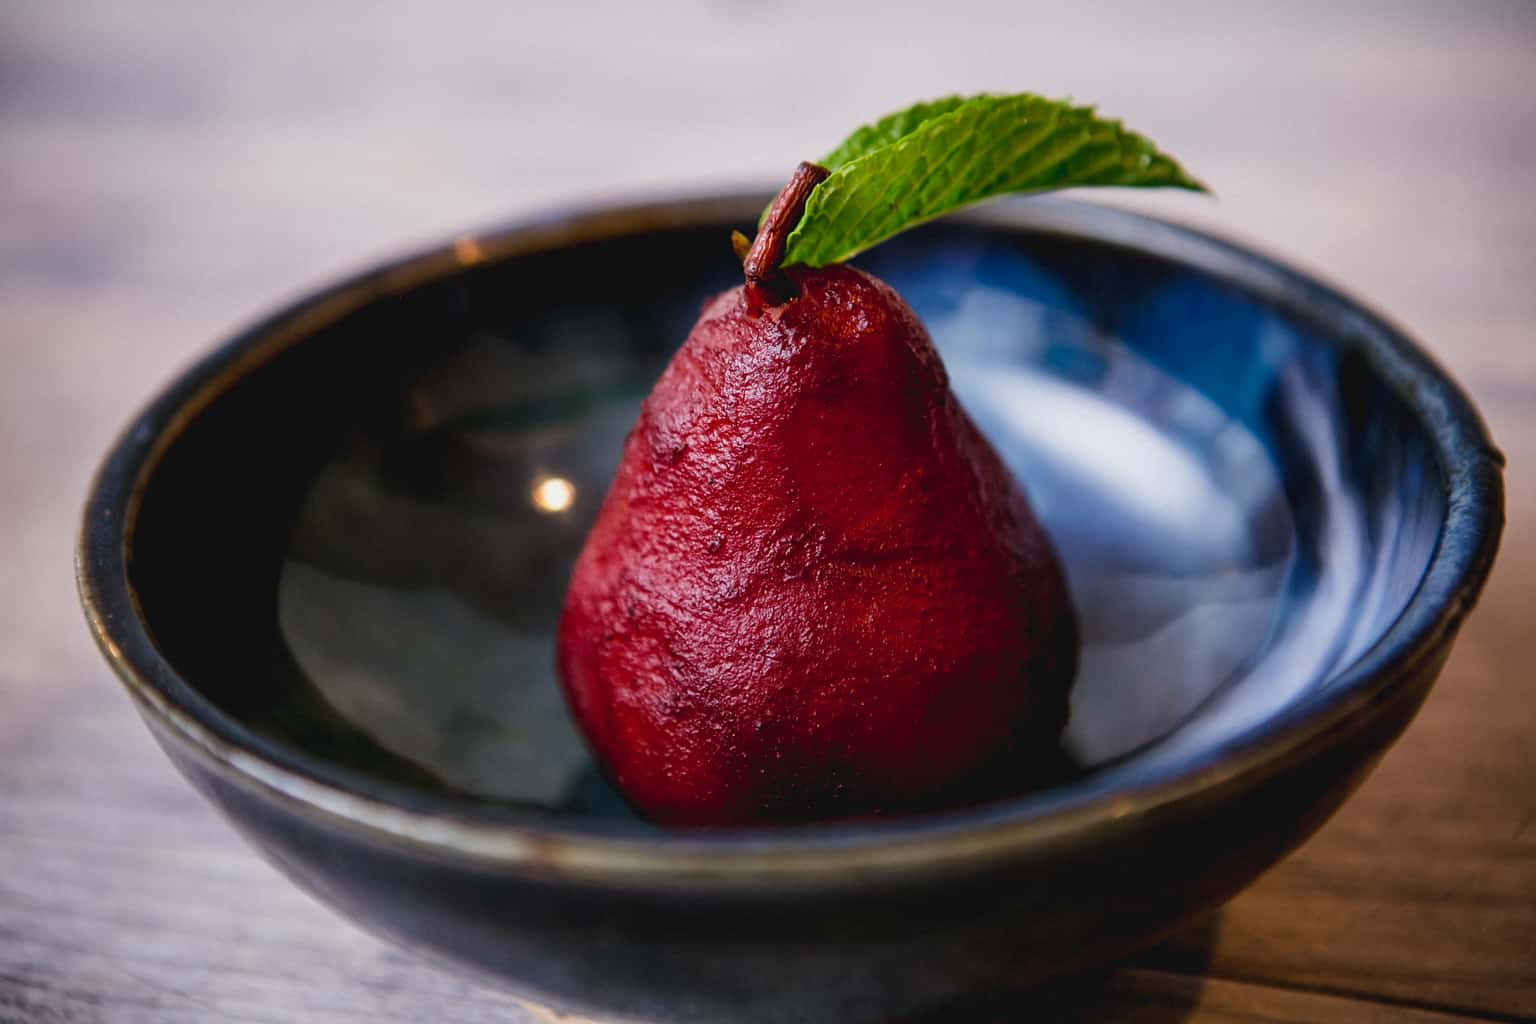 Poached pear in a bowl